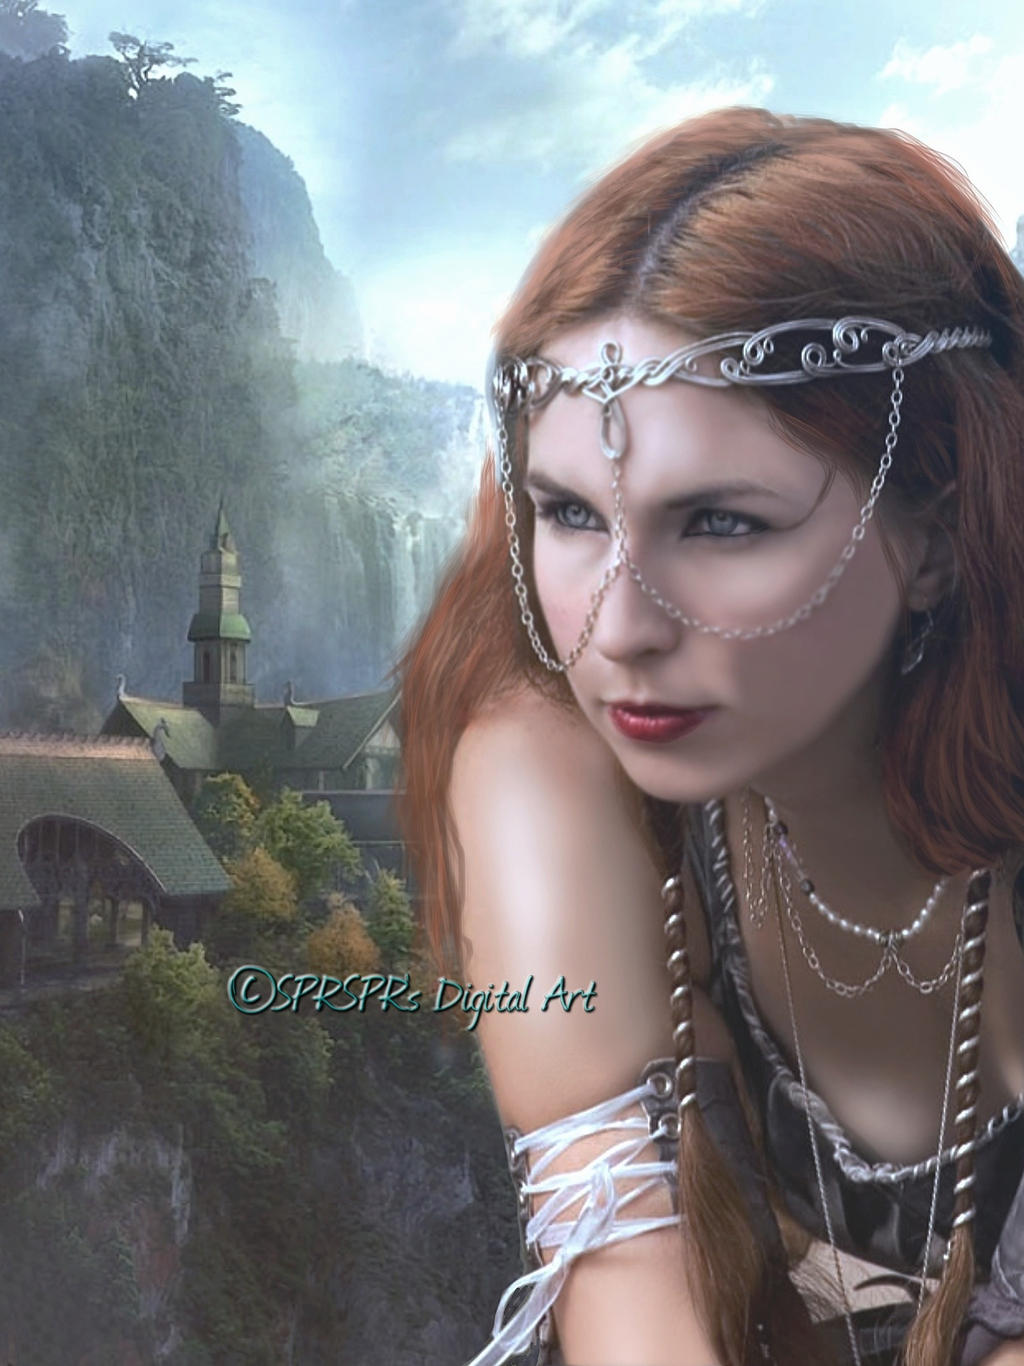 My home ~ Rivendell by SPRSPRsDigitalArt